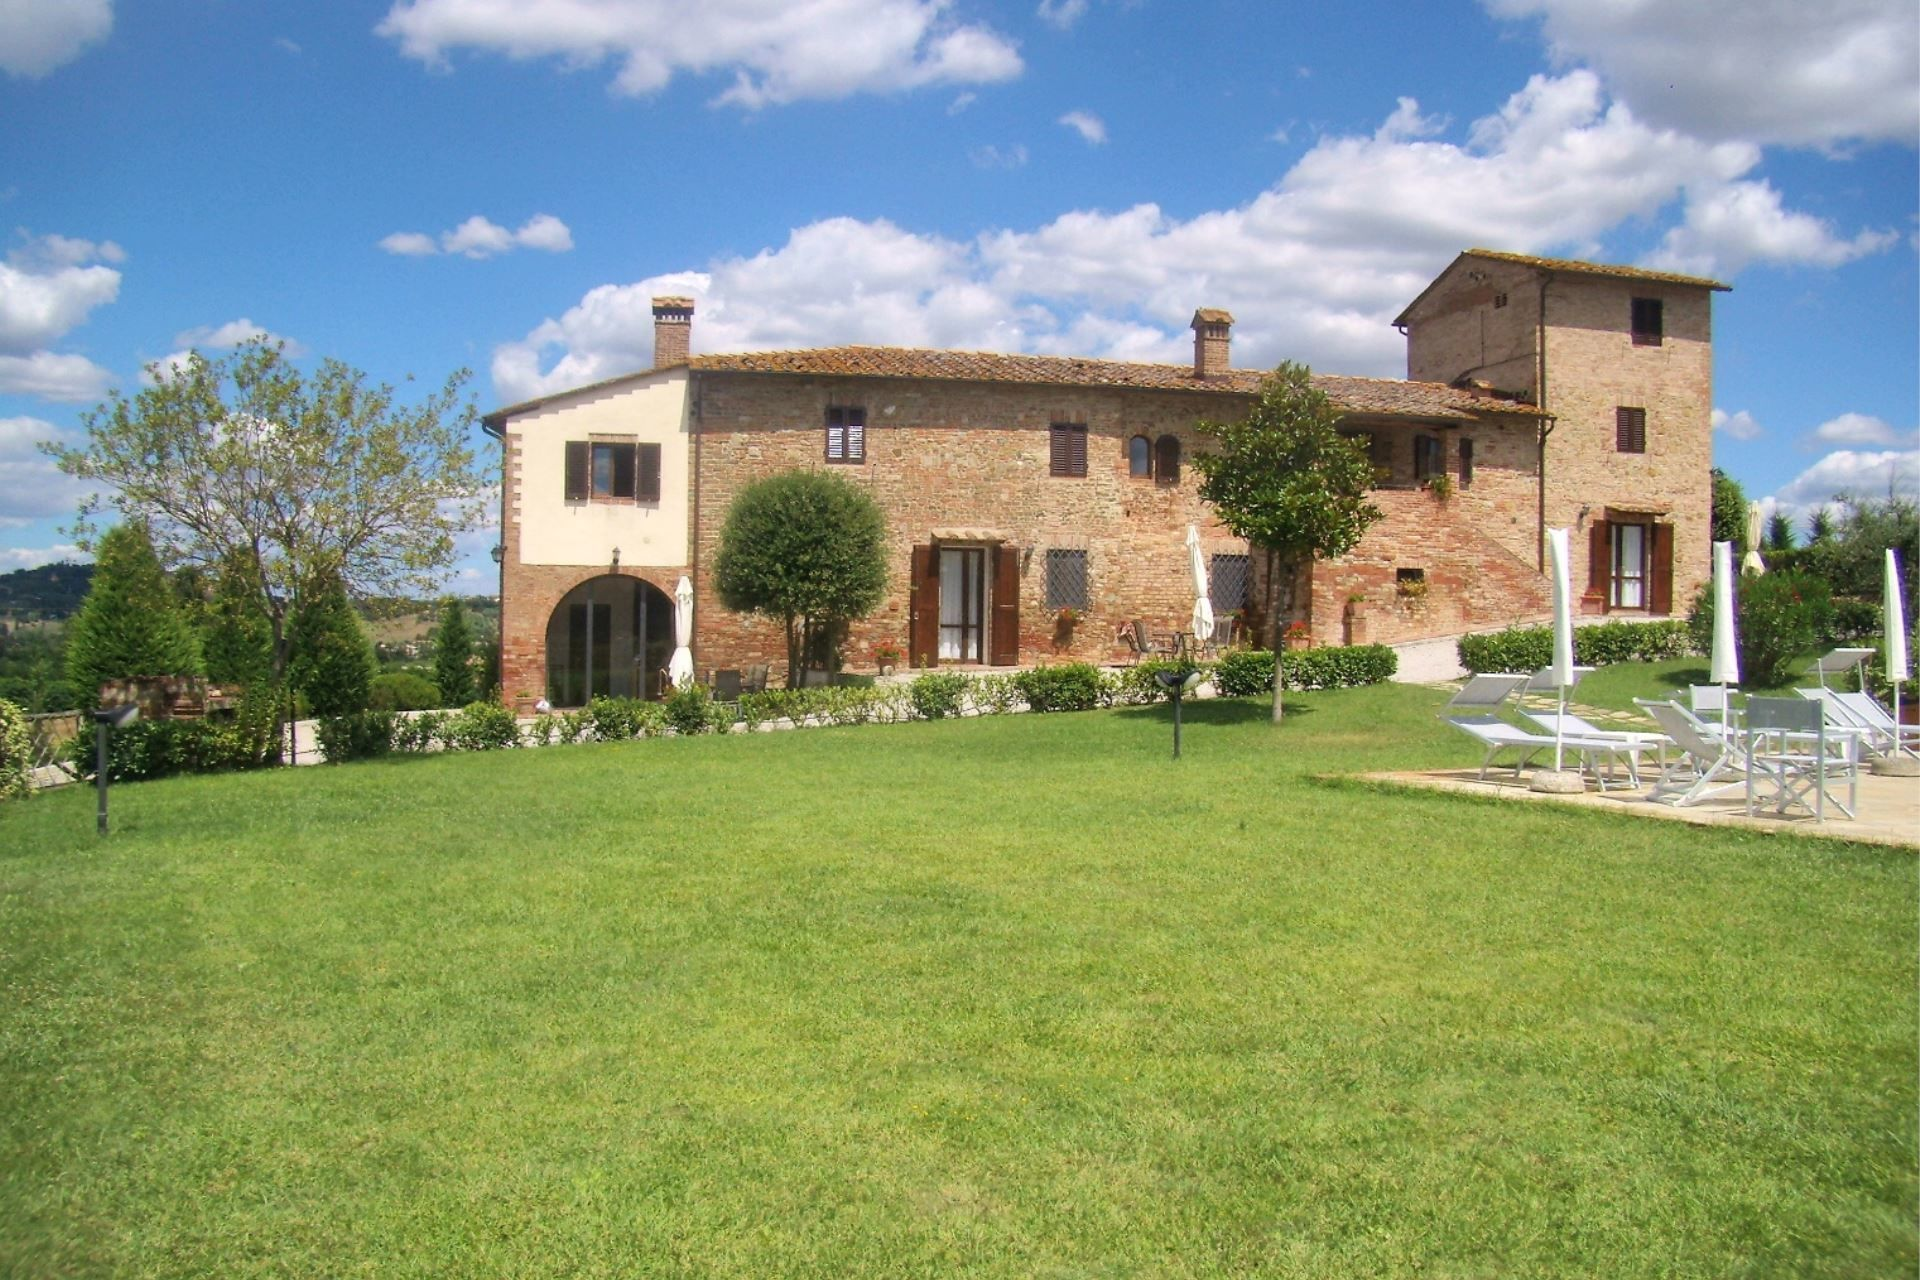 Beauty At Home Castelfiorentino villa caselsa: villa that sleeps 24 people in 12 bedrooms